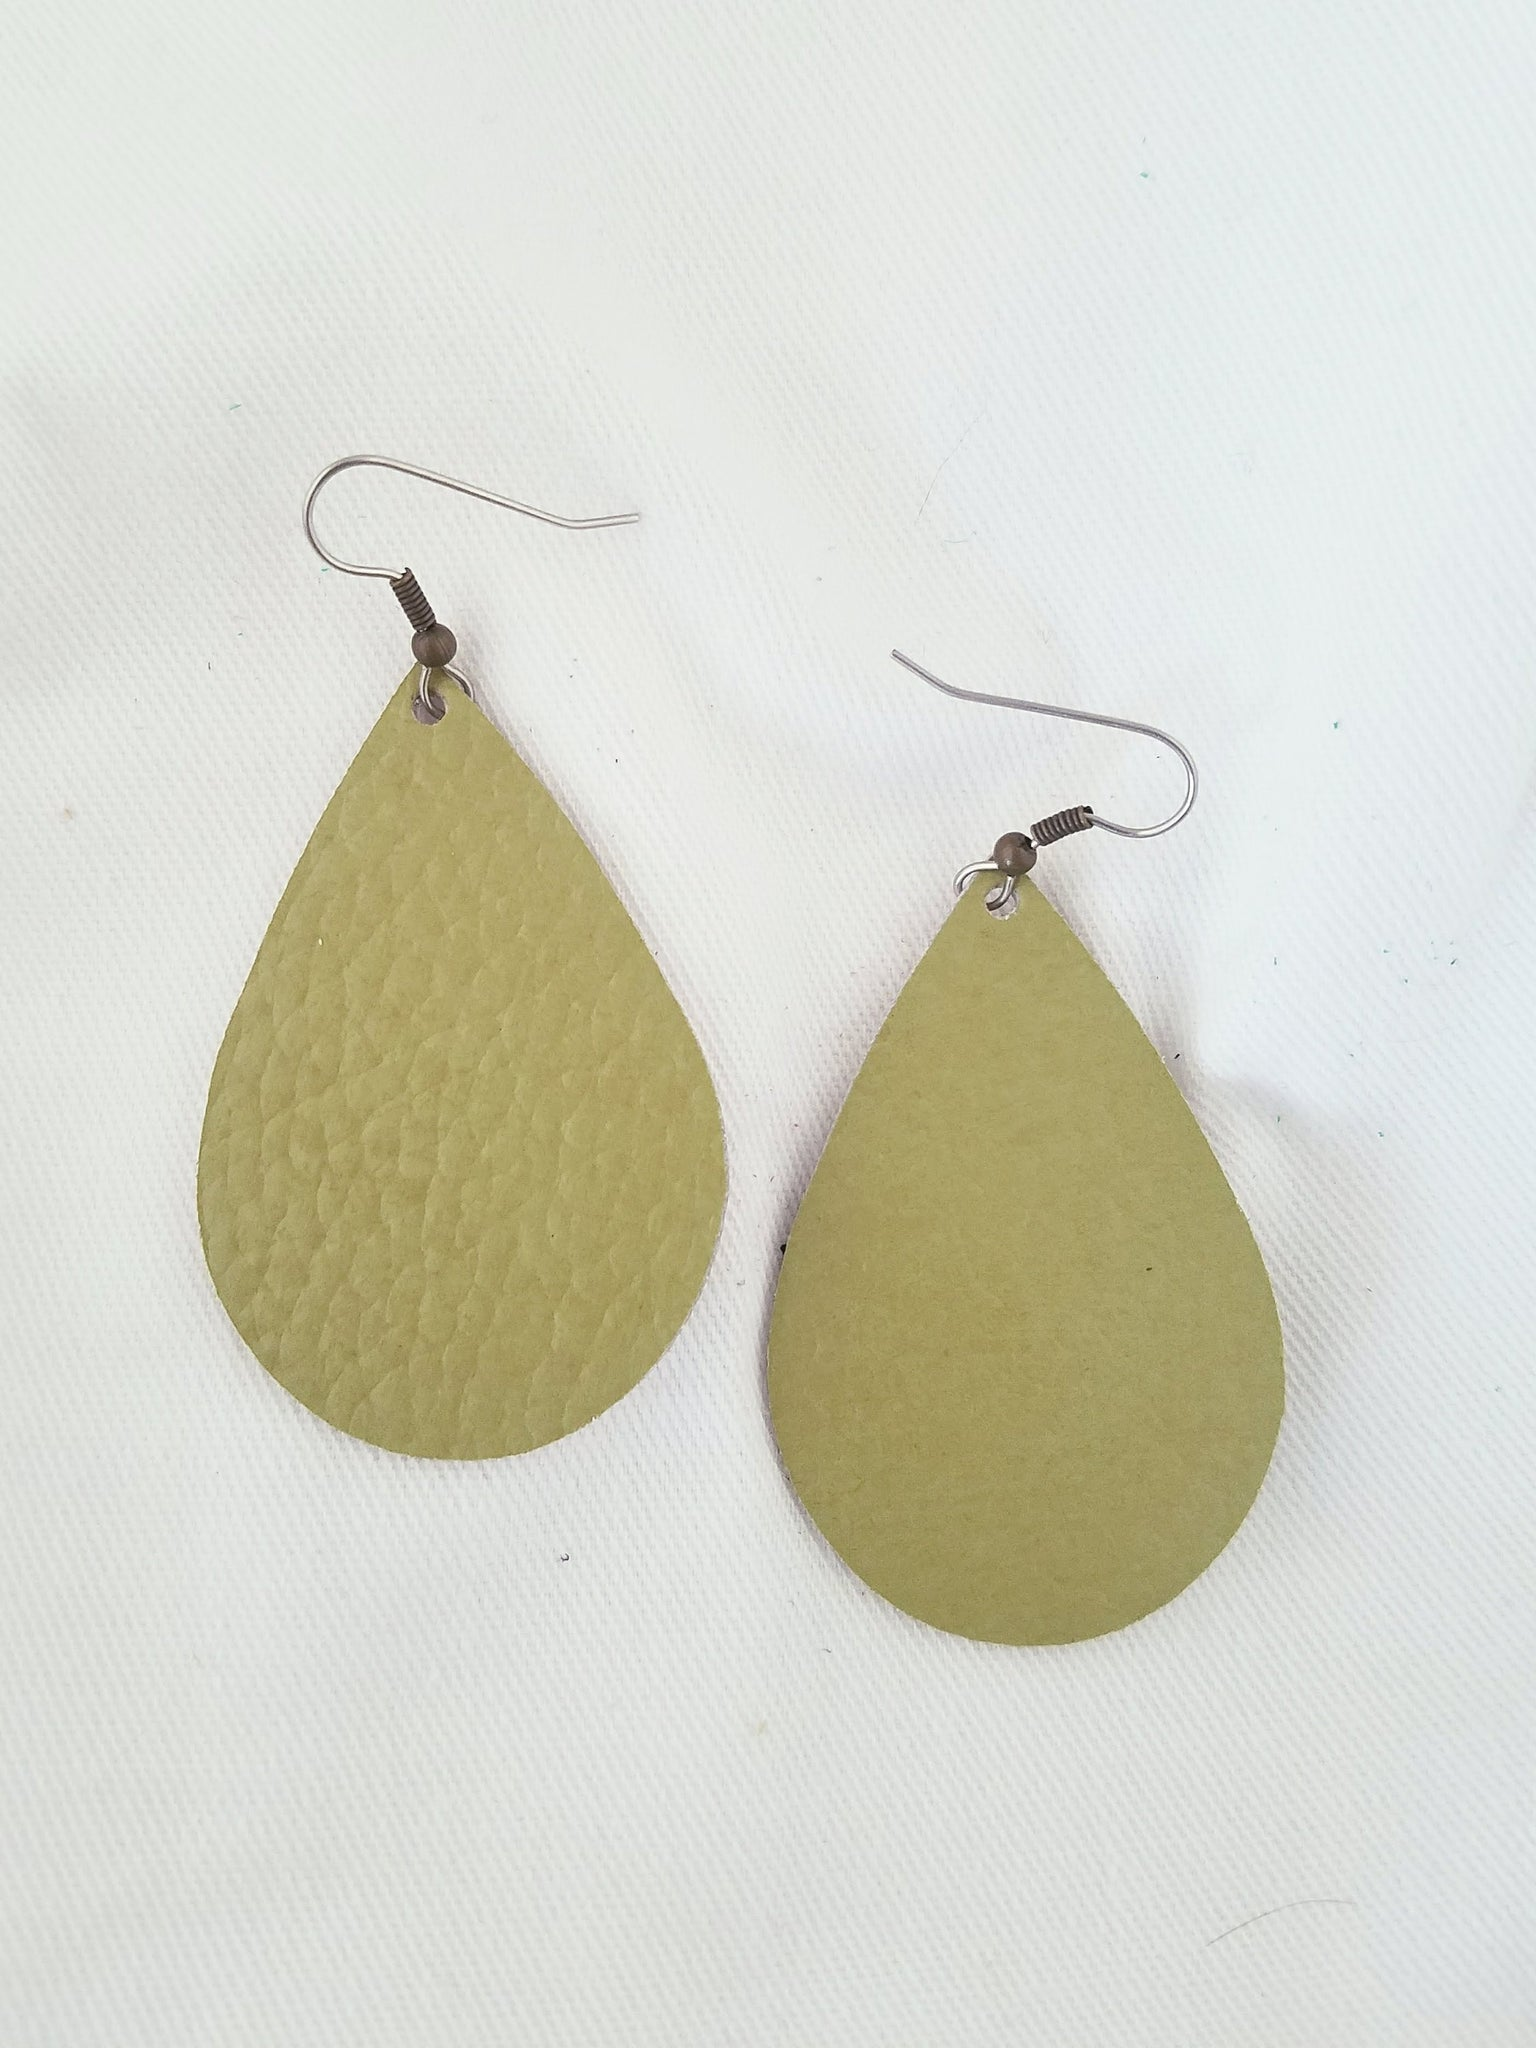 Green Tea Leather Earrings/ Leather Teardrop Earrings / Joanna Gaines Style